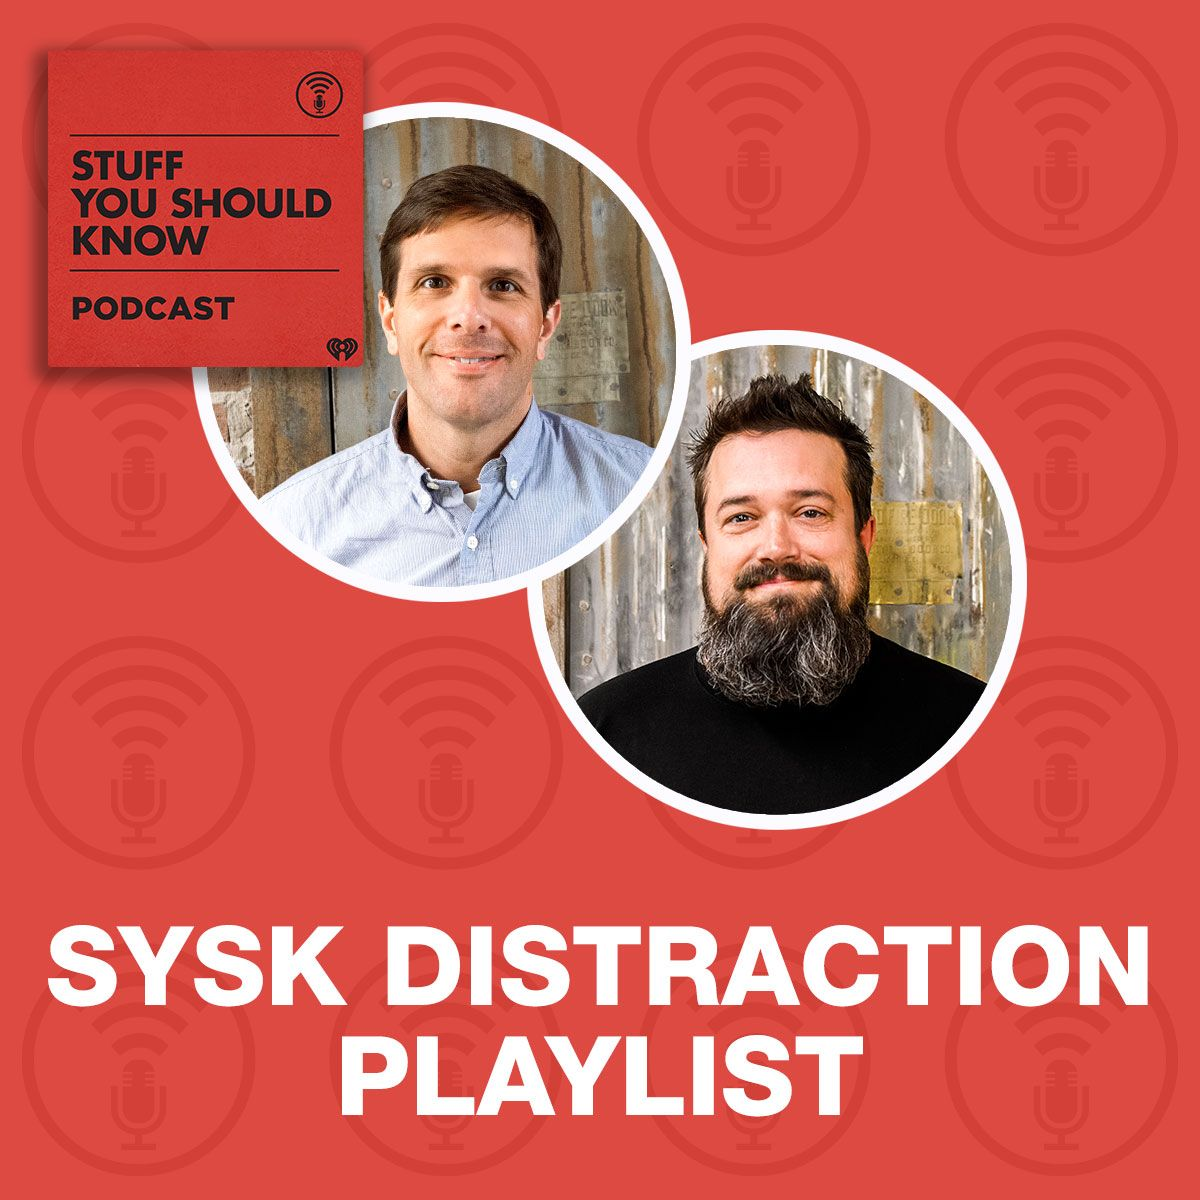 SYSK Distraction Playlist: How Rodney Dangerfield Worked, Live From LA